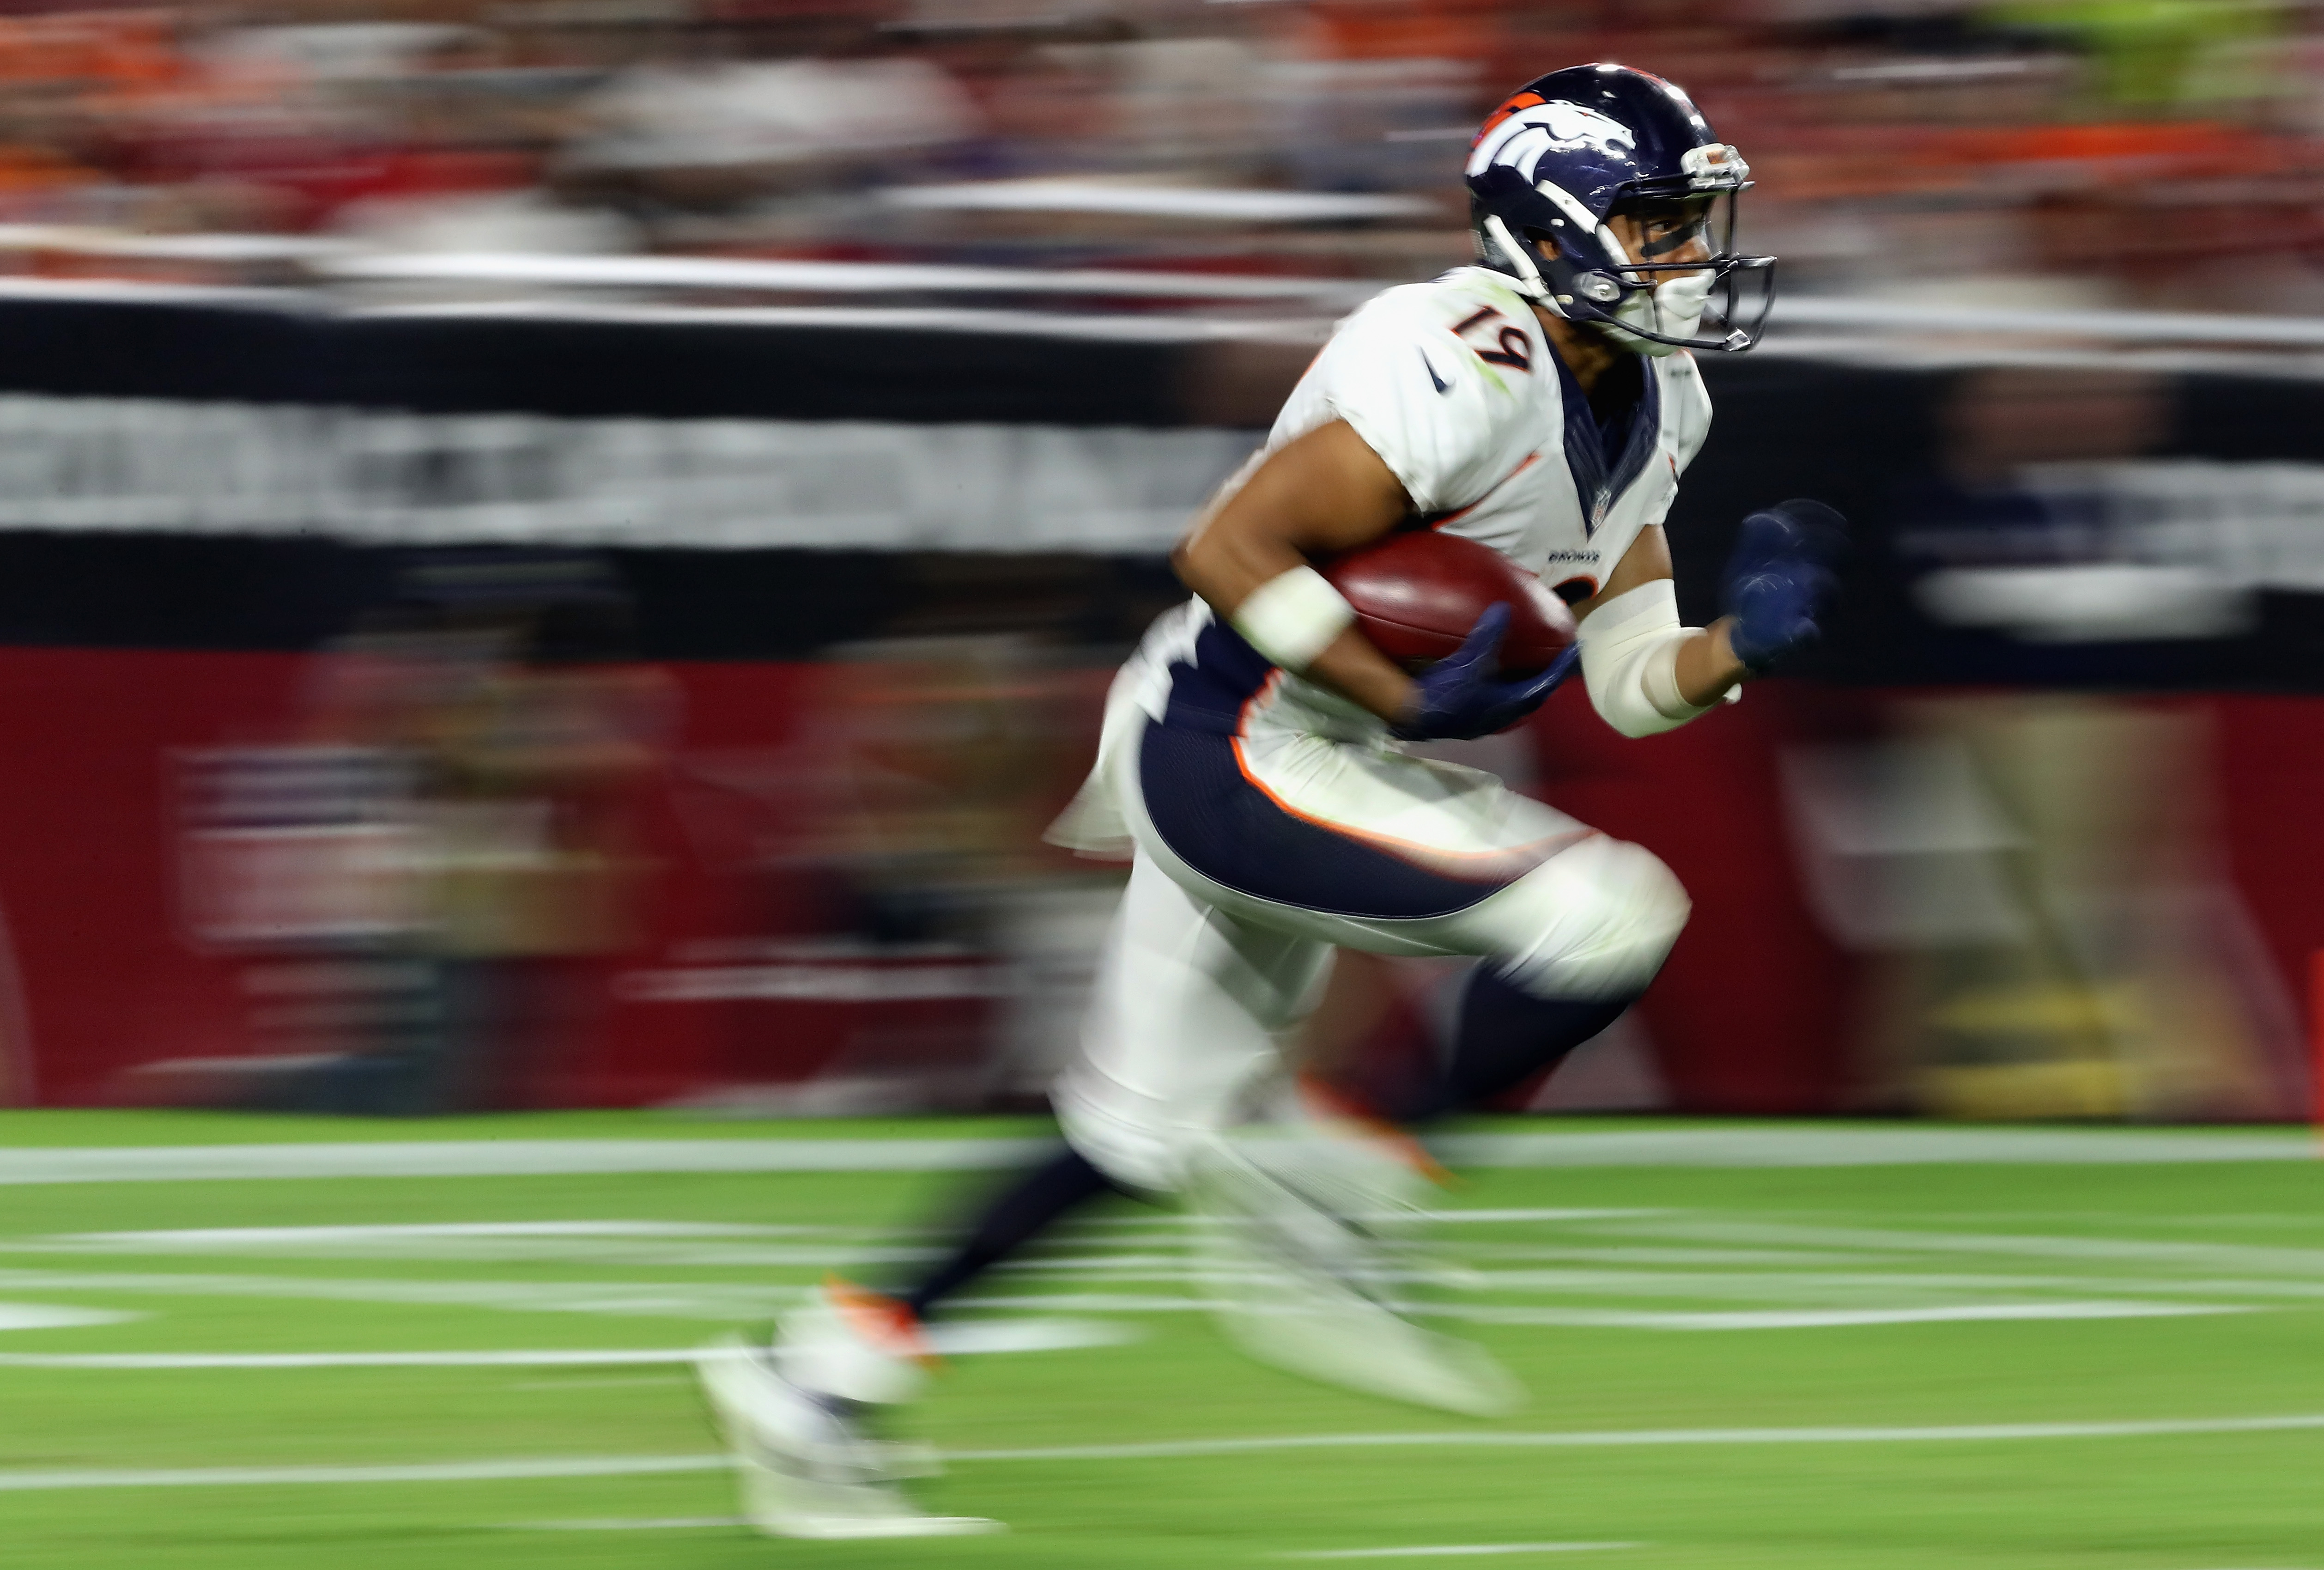 Kalif Raymond of the Denver Broncos returns a kick off against the Arizona Cardinals during the preseaon NFL game at the University of Phoenix Stadium on September 1, 2016 in Glendale, Arizona.  (credit: Christian Petersen/Getty Images)